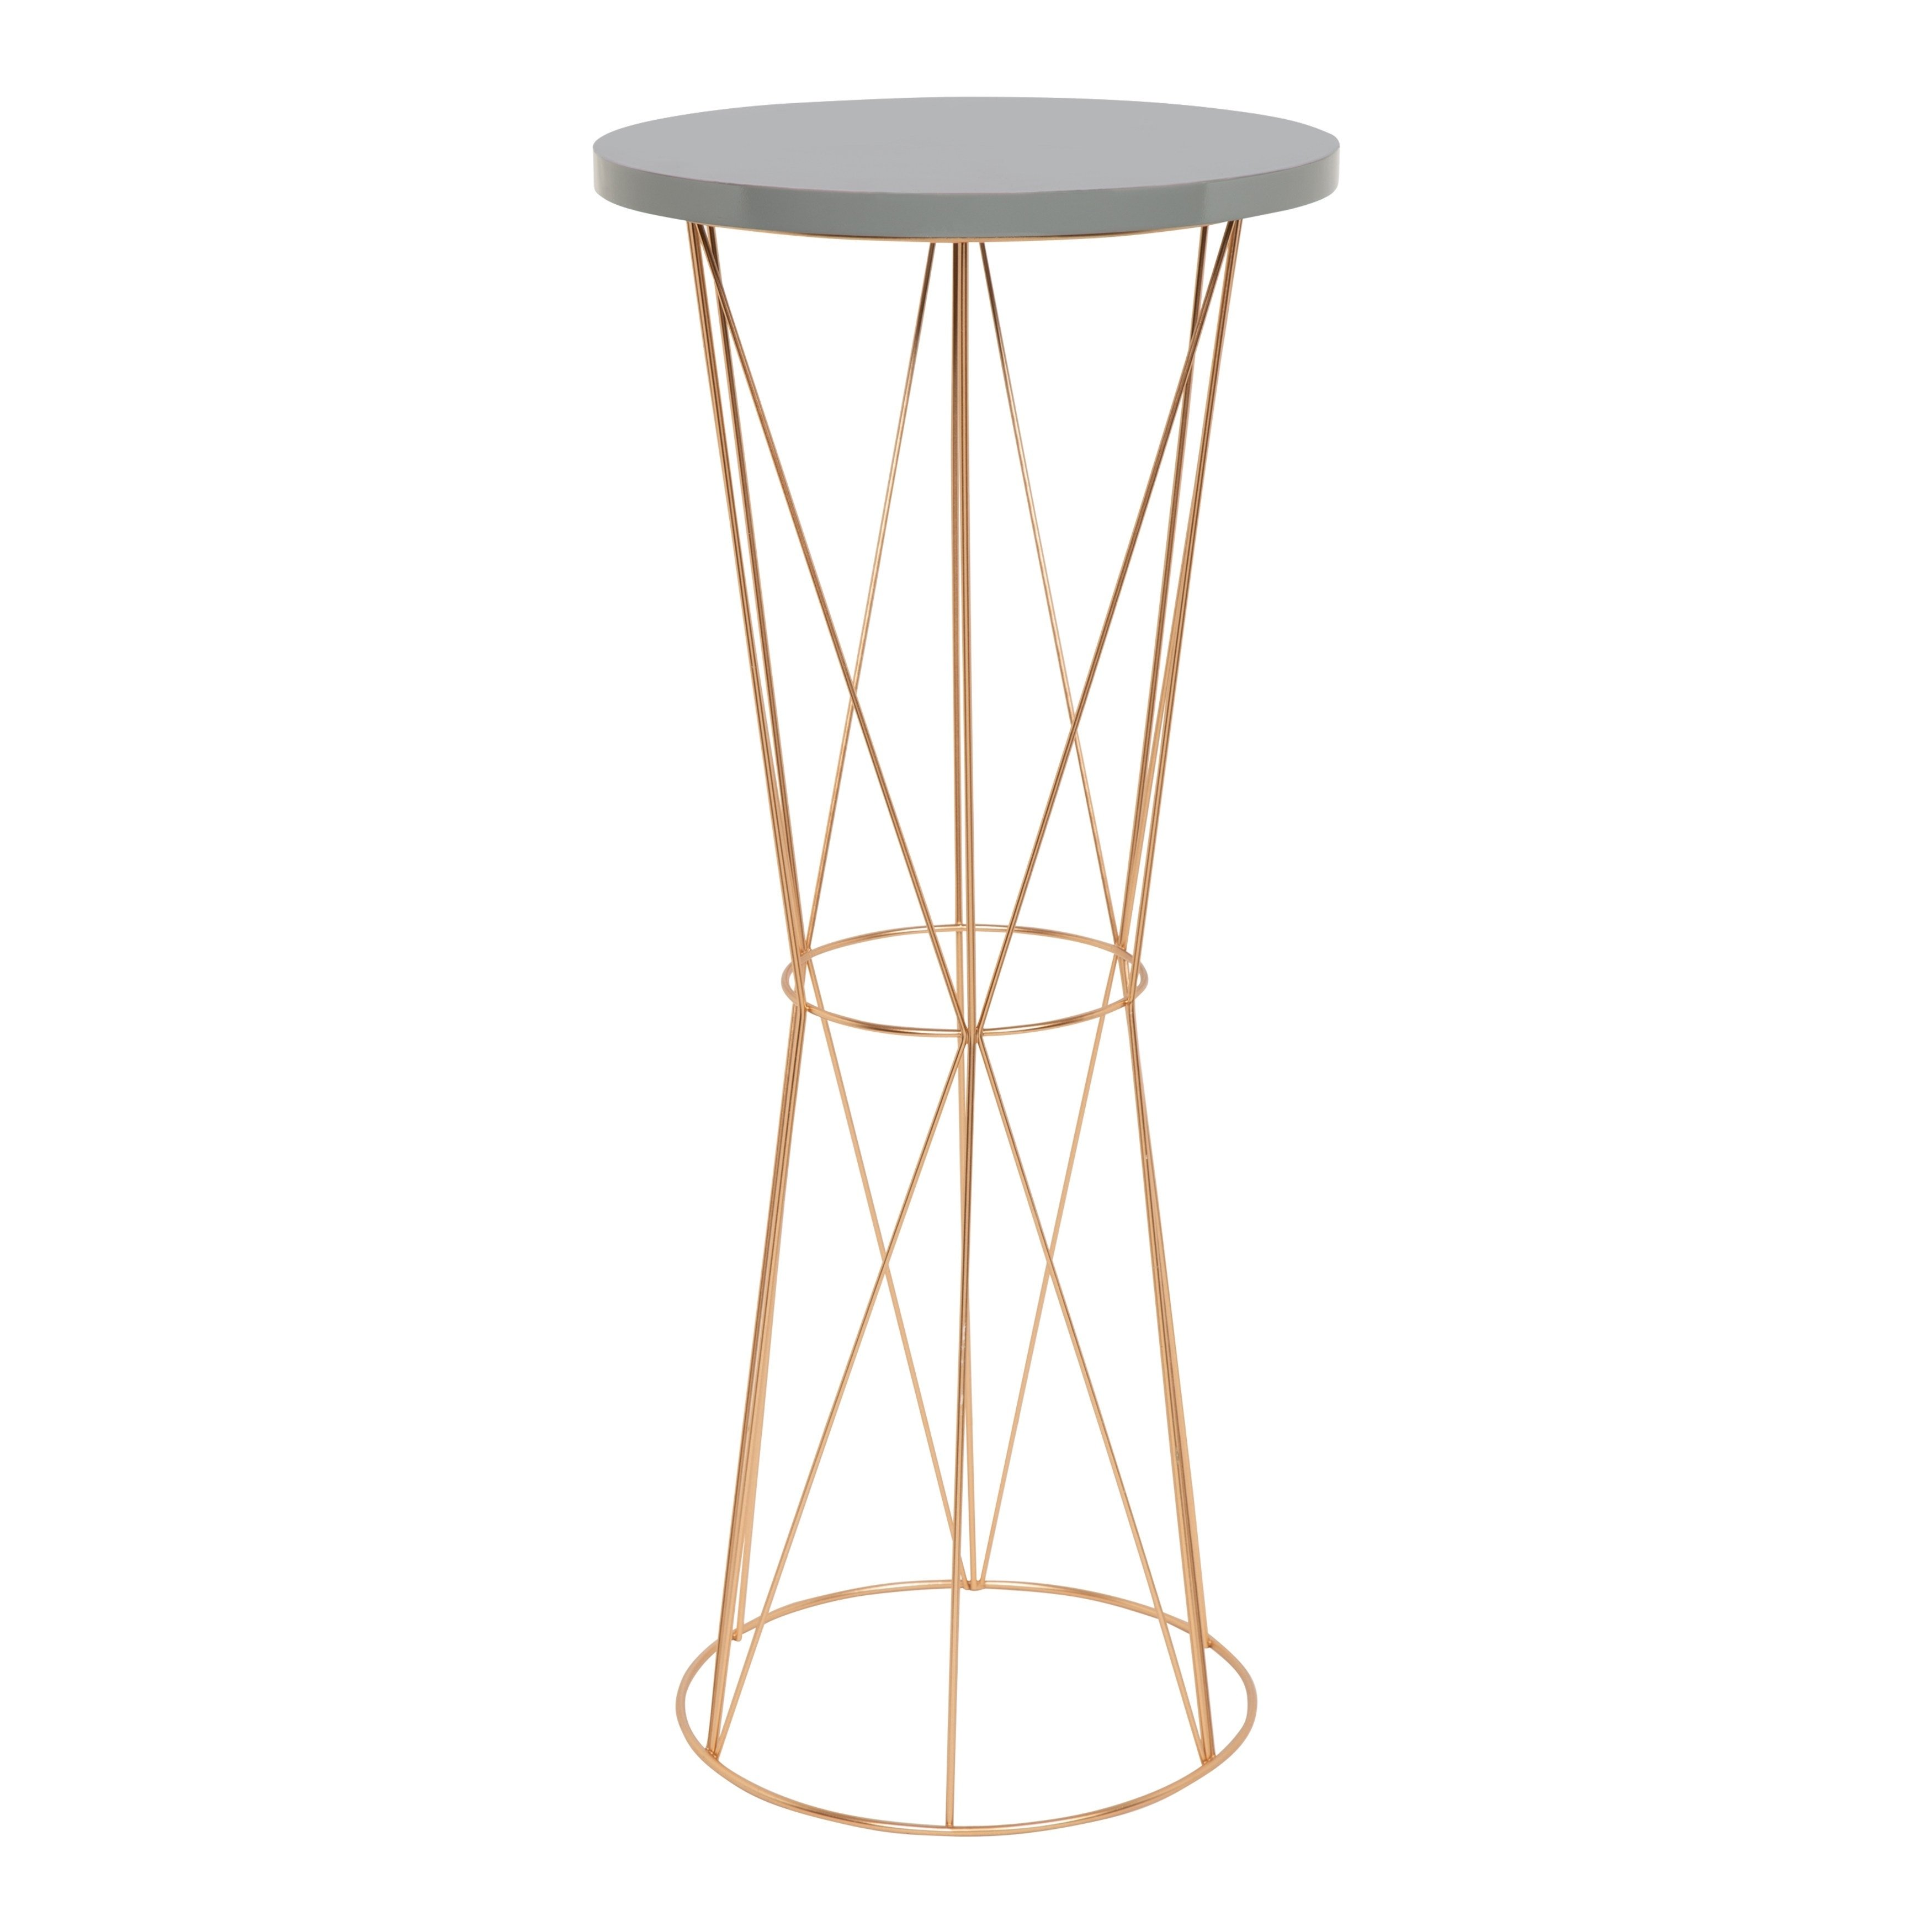 kate and laurel mendel round metal accent table iron gold side coffee decorative accents traditional dining room furniture west elm concrete look rustic nested deck christmas tree